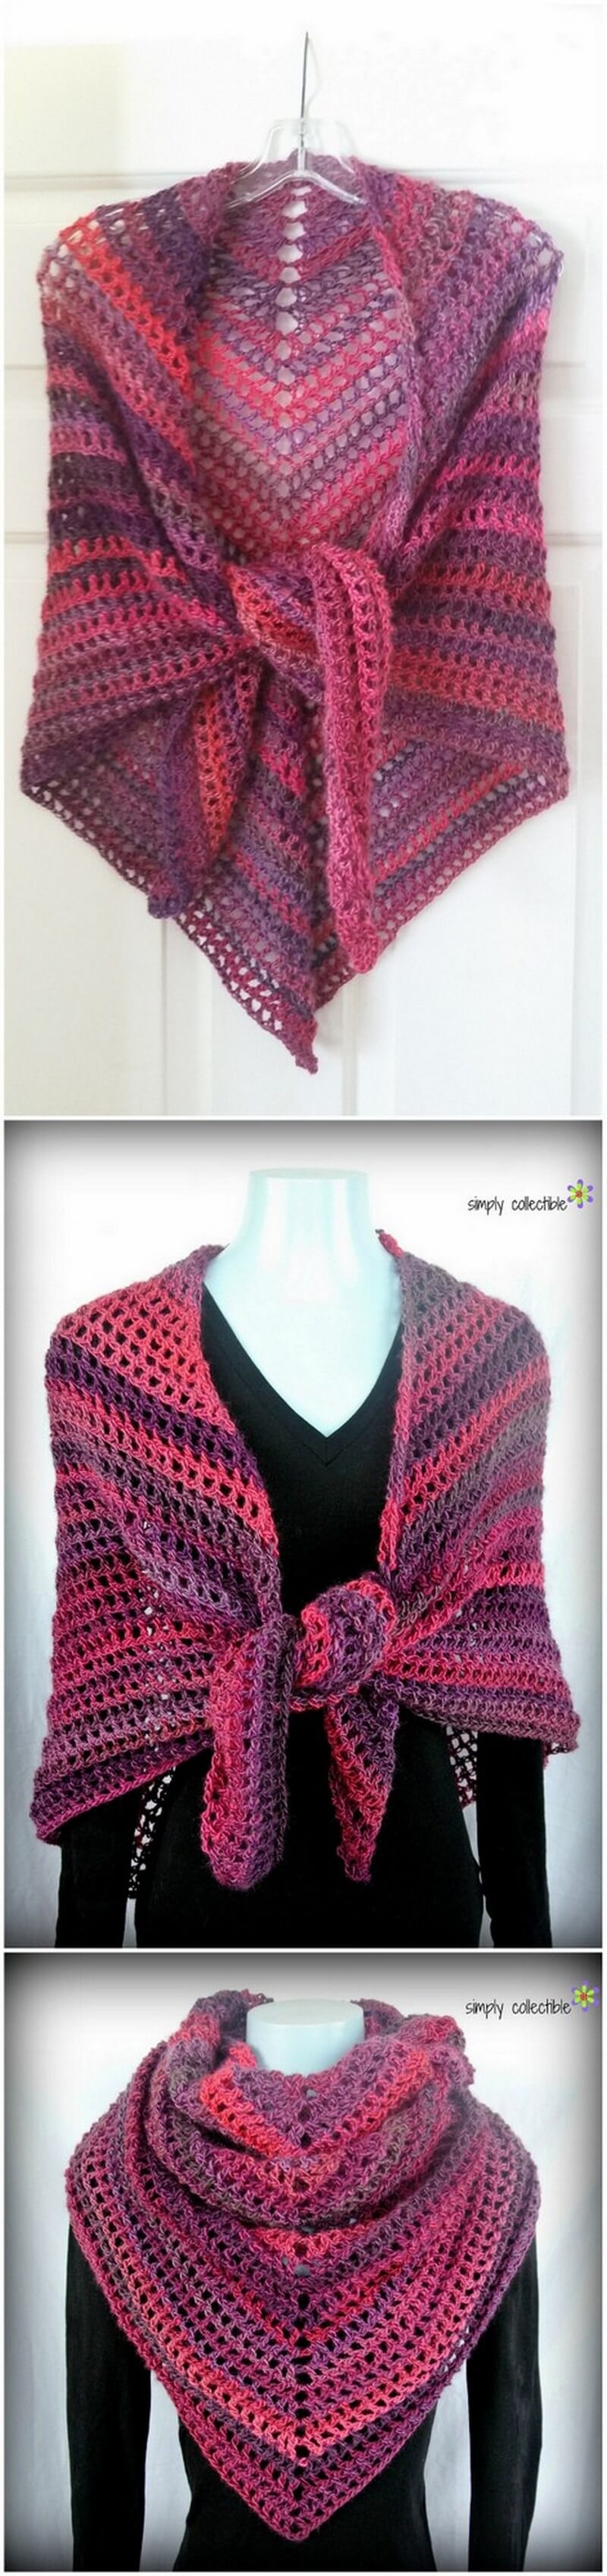 Crochet Shawl Pattern (60)